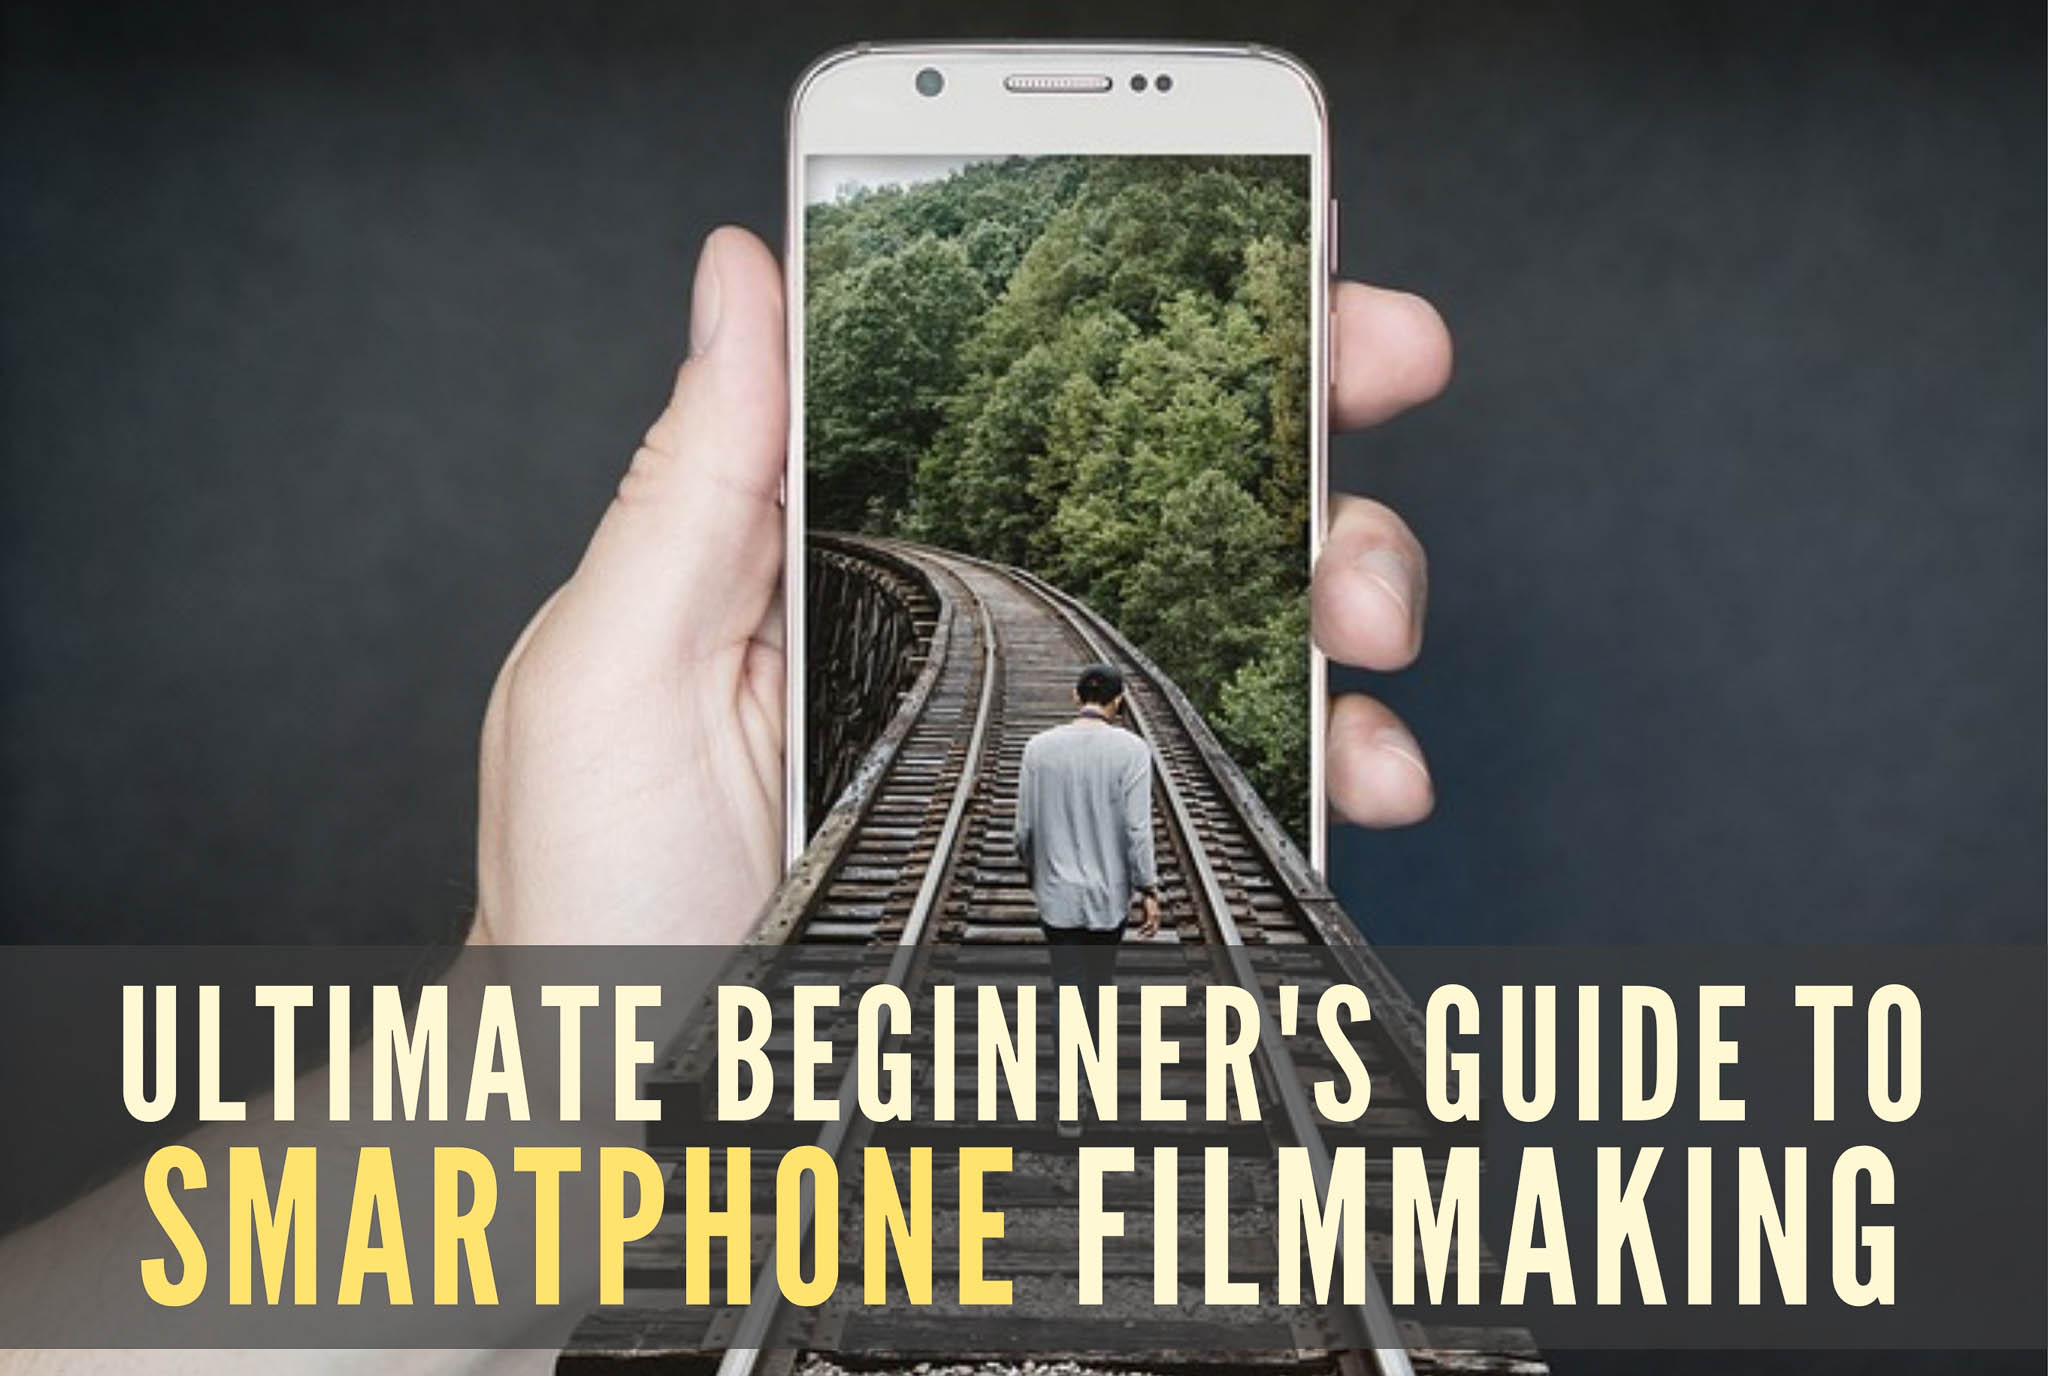 The Ultimate Beginner's Guide To Smartphone Filmmaking